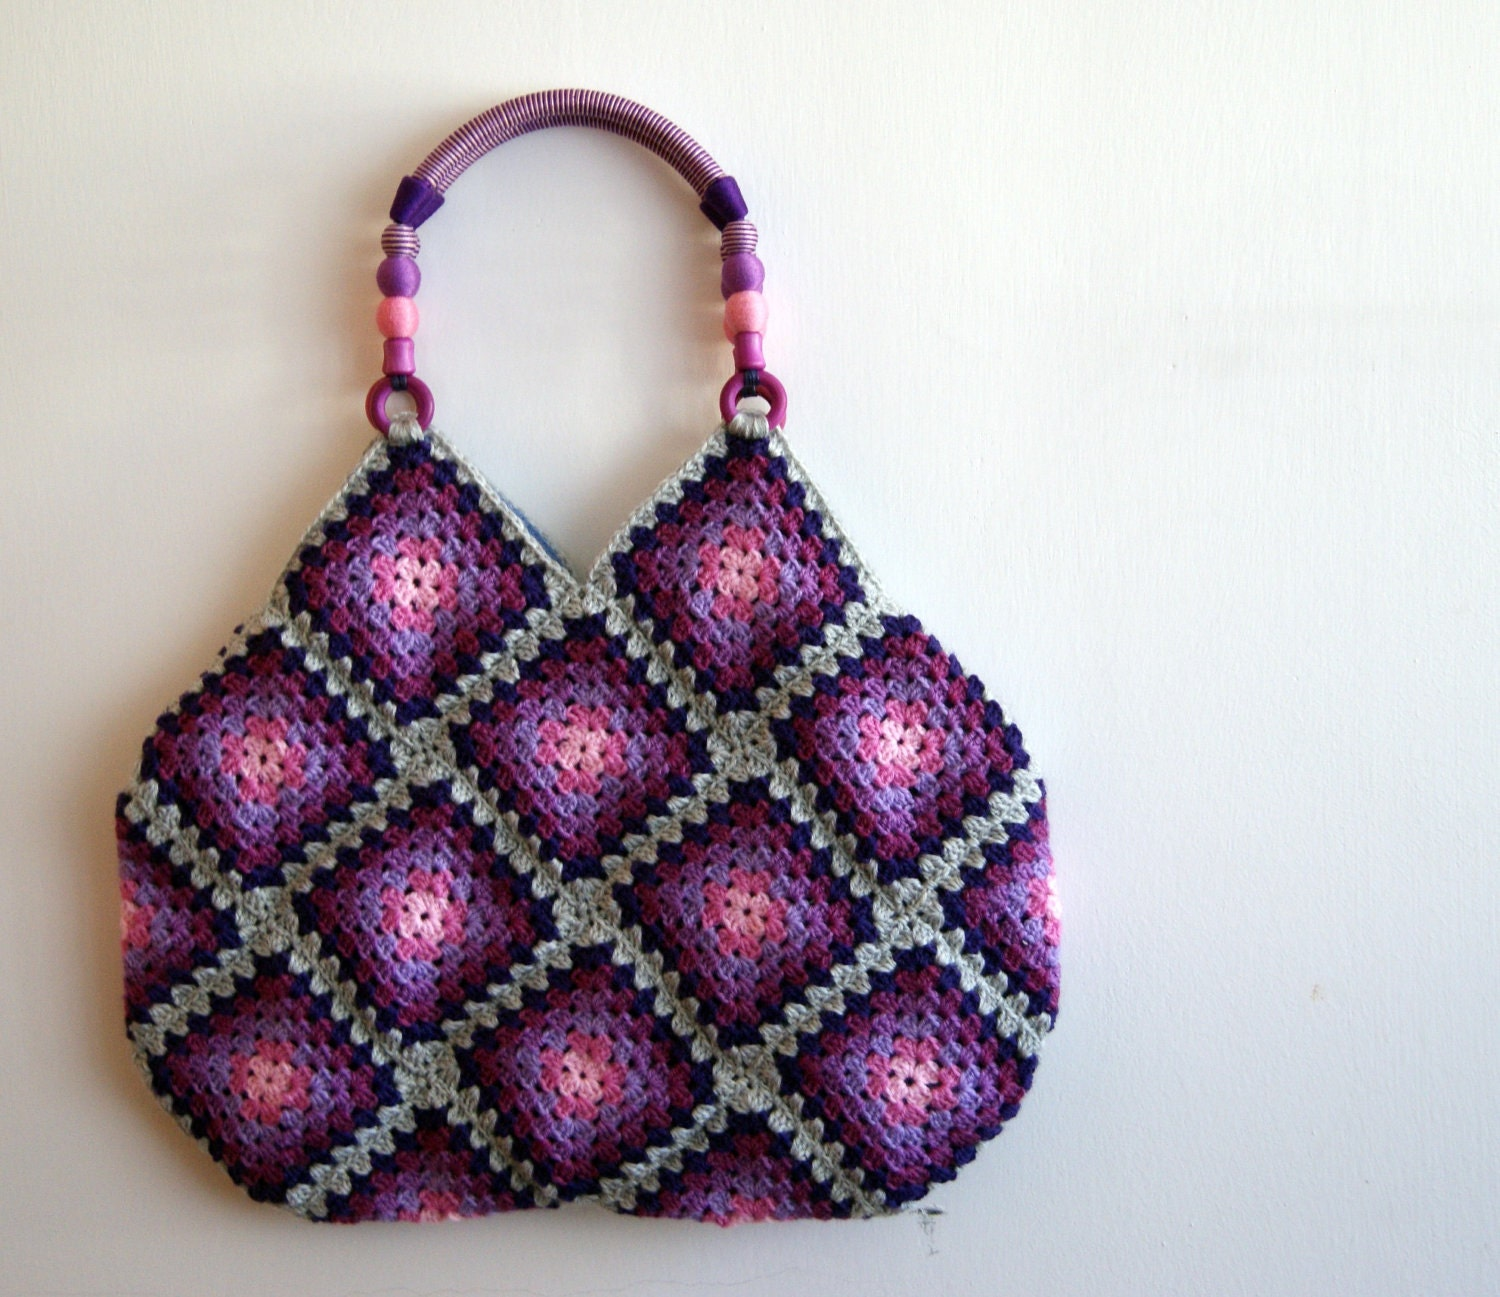 Crochet Bag Granny Square : Crochet granny square bag by knittingcate on Etsy